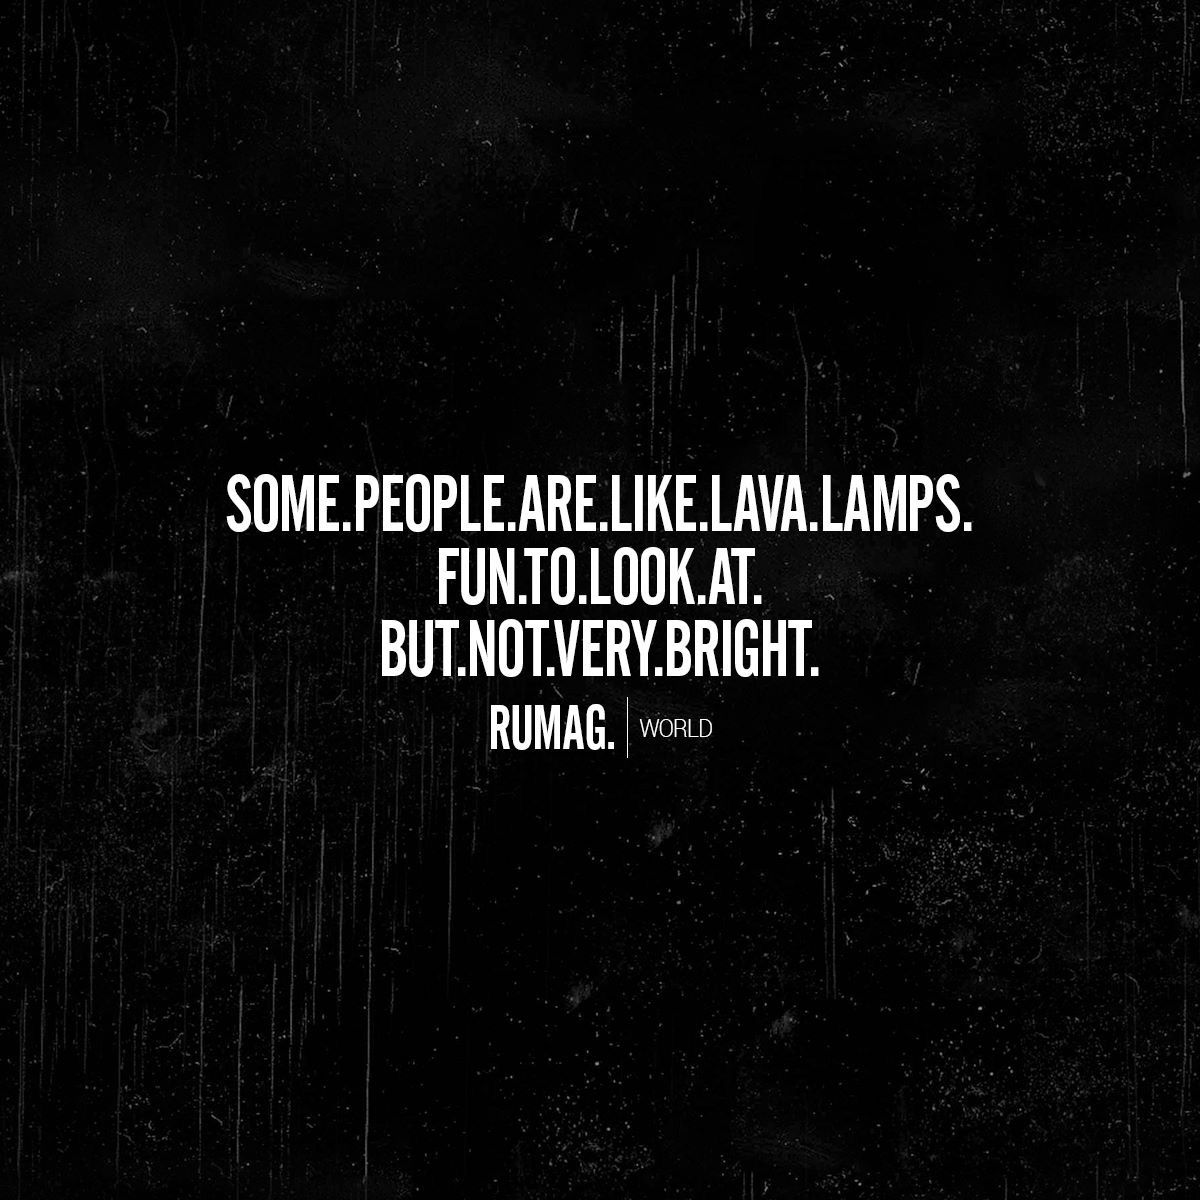 Some People Are Like Lava Lamps Fun To Look At But Not Very